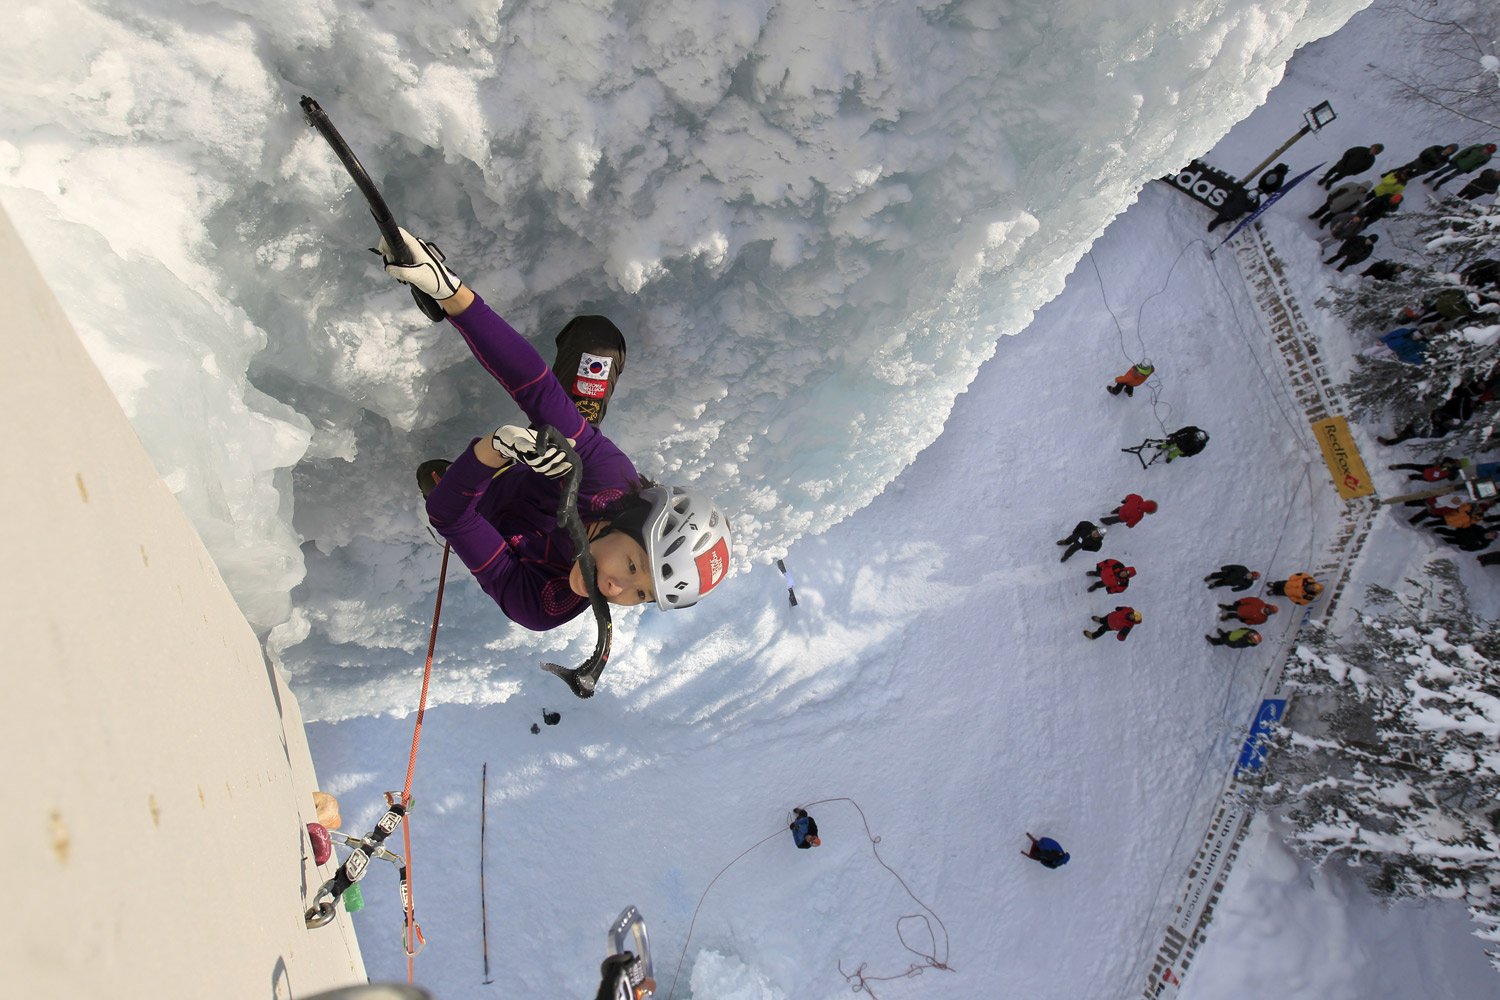 February 4, 2012. South-Korea's Seon Shin Woon performs on the ice climbing structure during the semi-final of the Ice Climbing World Cup in Champagny-en-Vanoise, France.